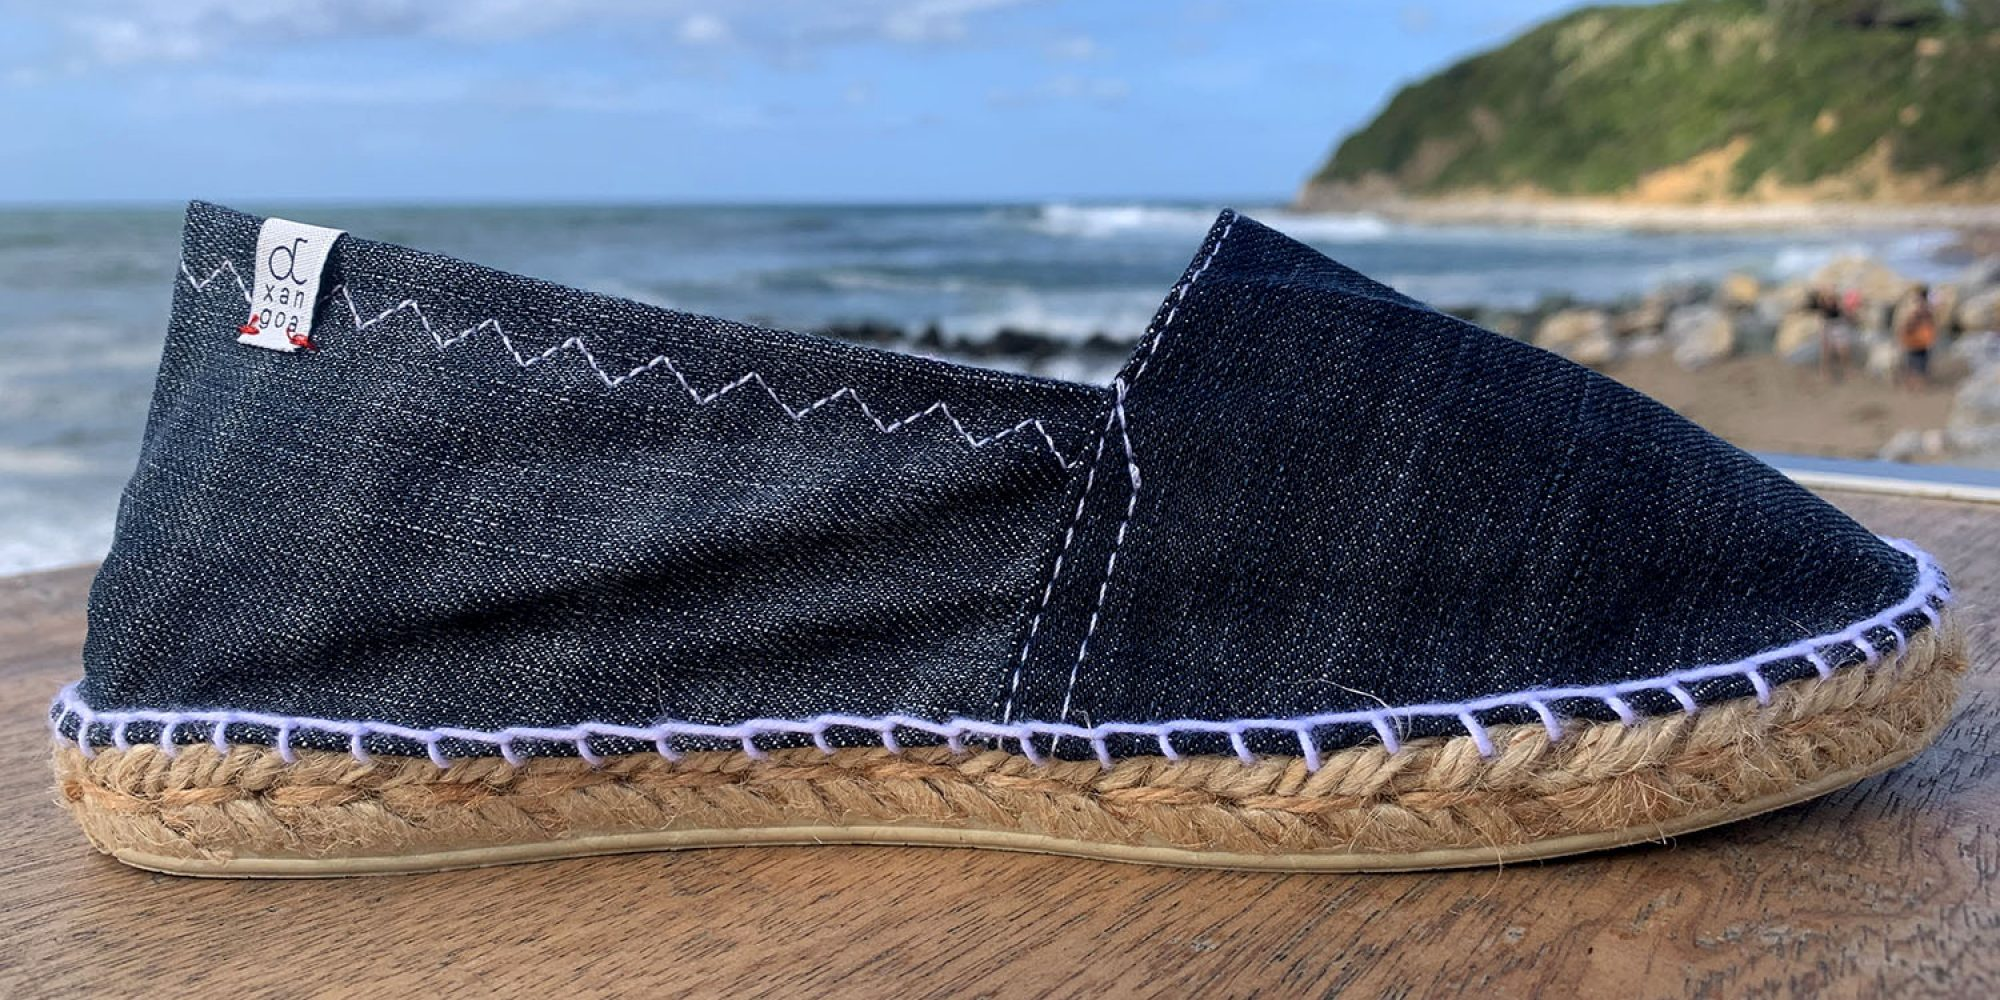 Our eco-designed and Made in France Otxangoa espadrilles. Here, in dark jeans.